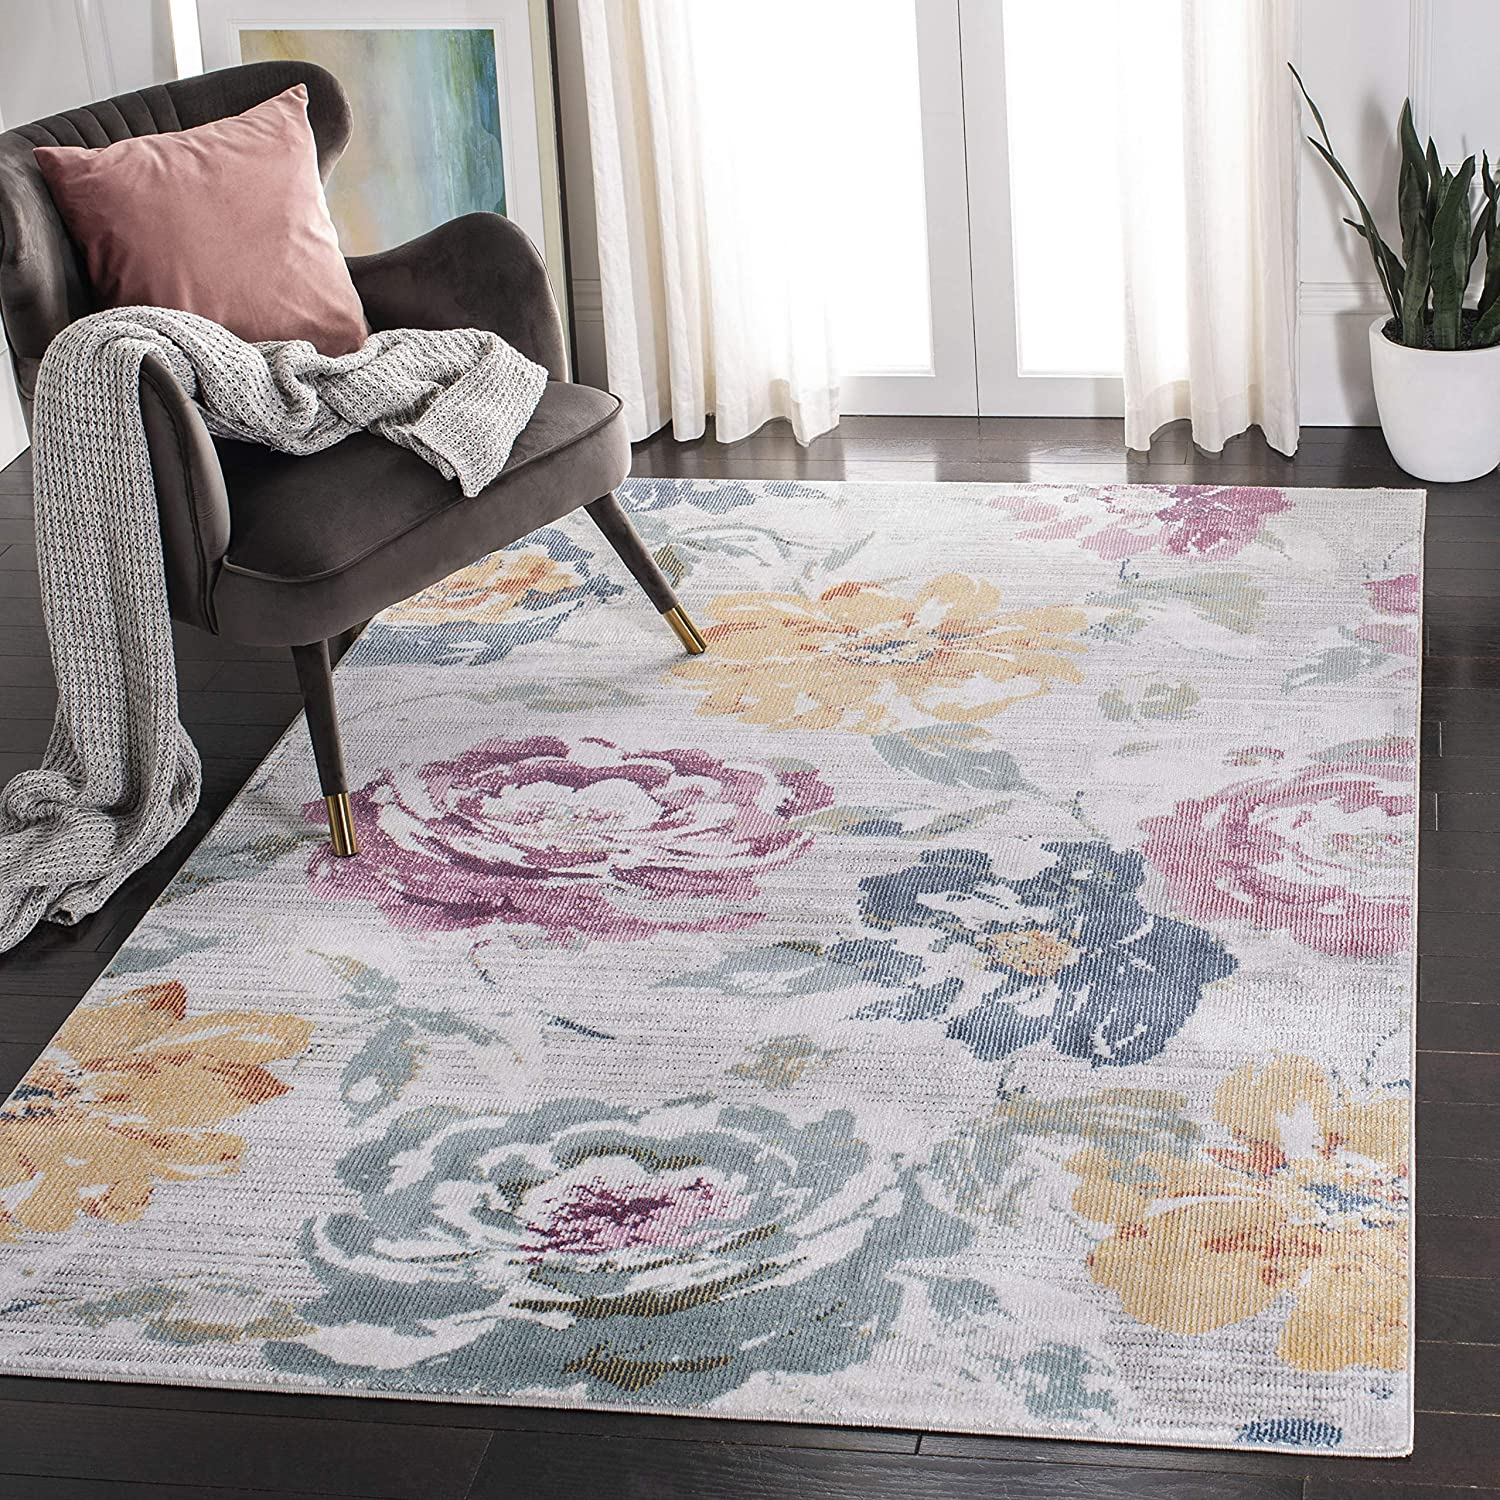 Amazon Com Safavieh Porcello Collection Prl997f Boho Floral Distressed Non Shedding Stain Resistant Living Room Bedroom Area Rug 9 X 12 Grey Yellow Furniture Decor